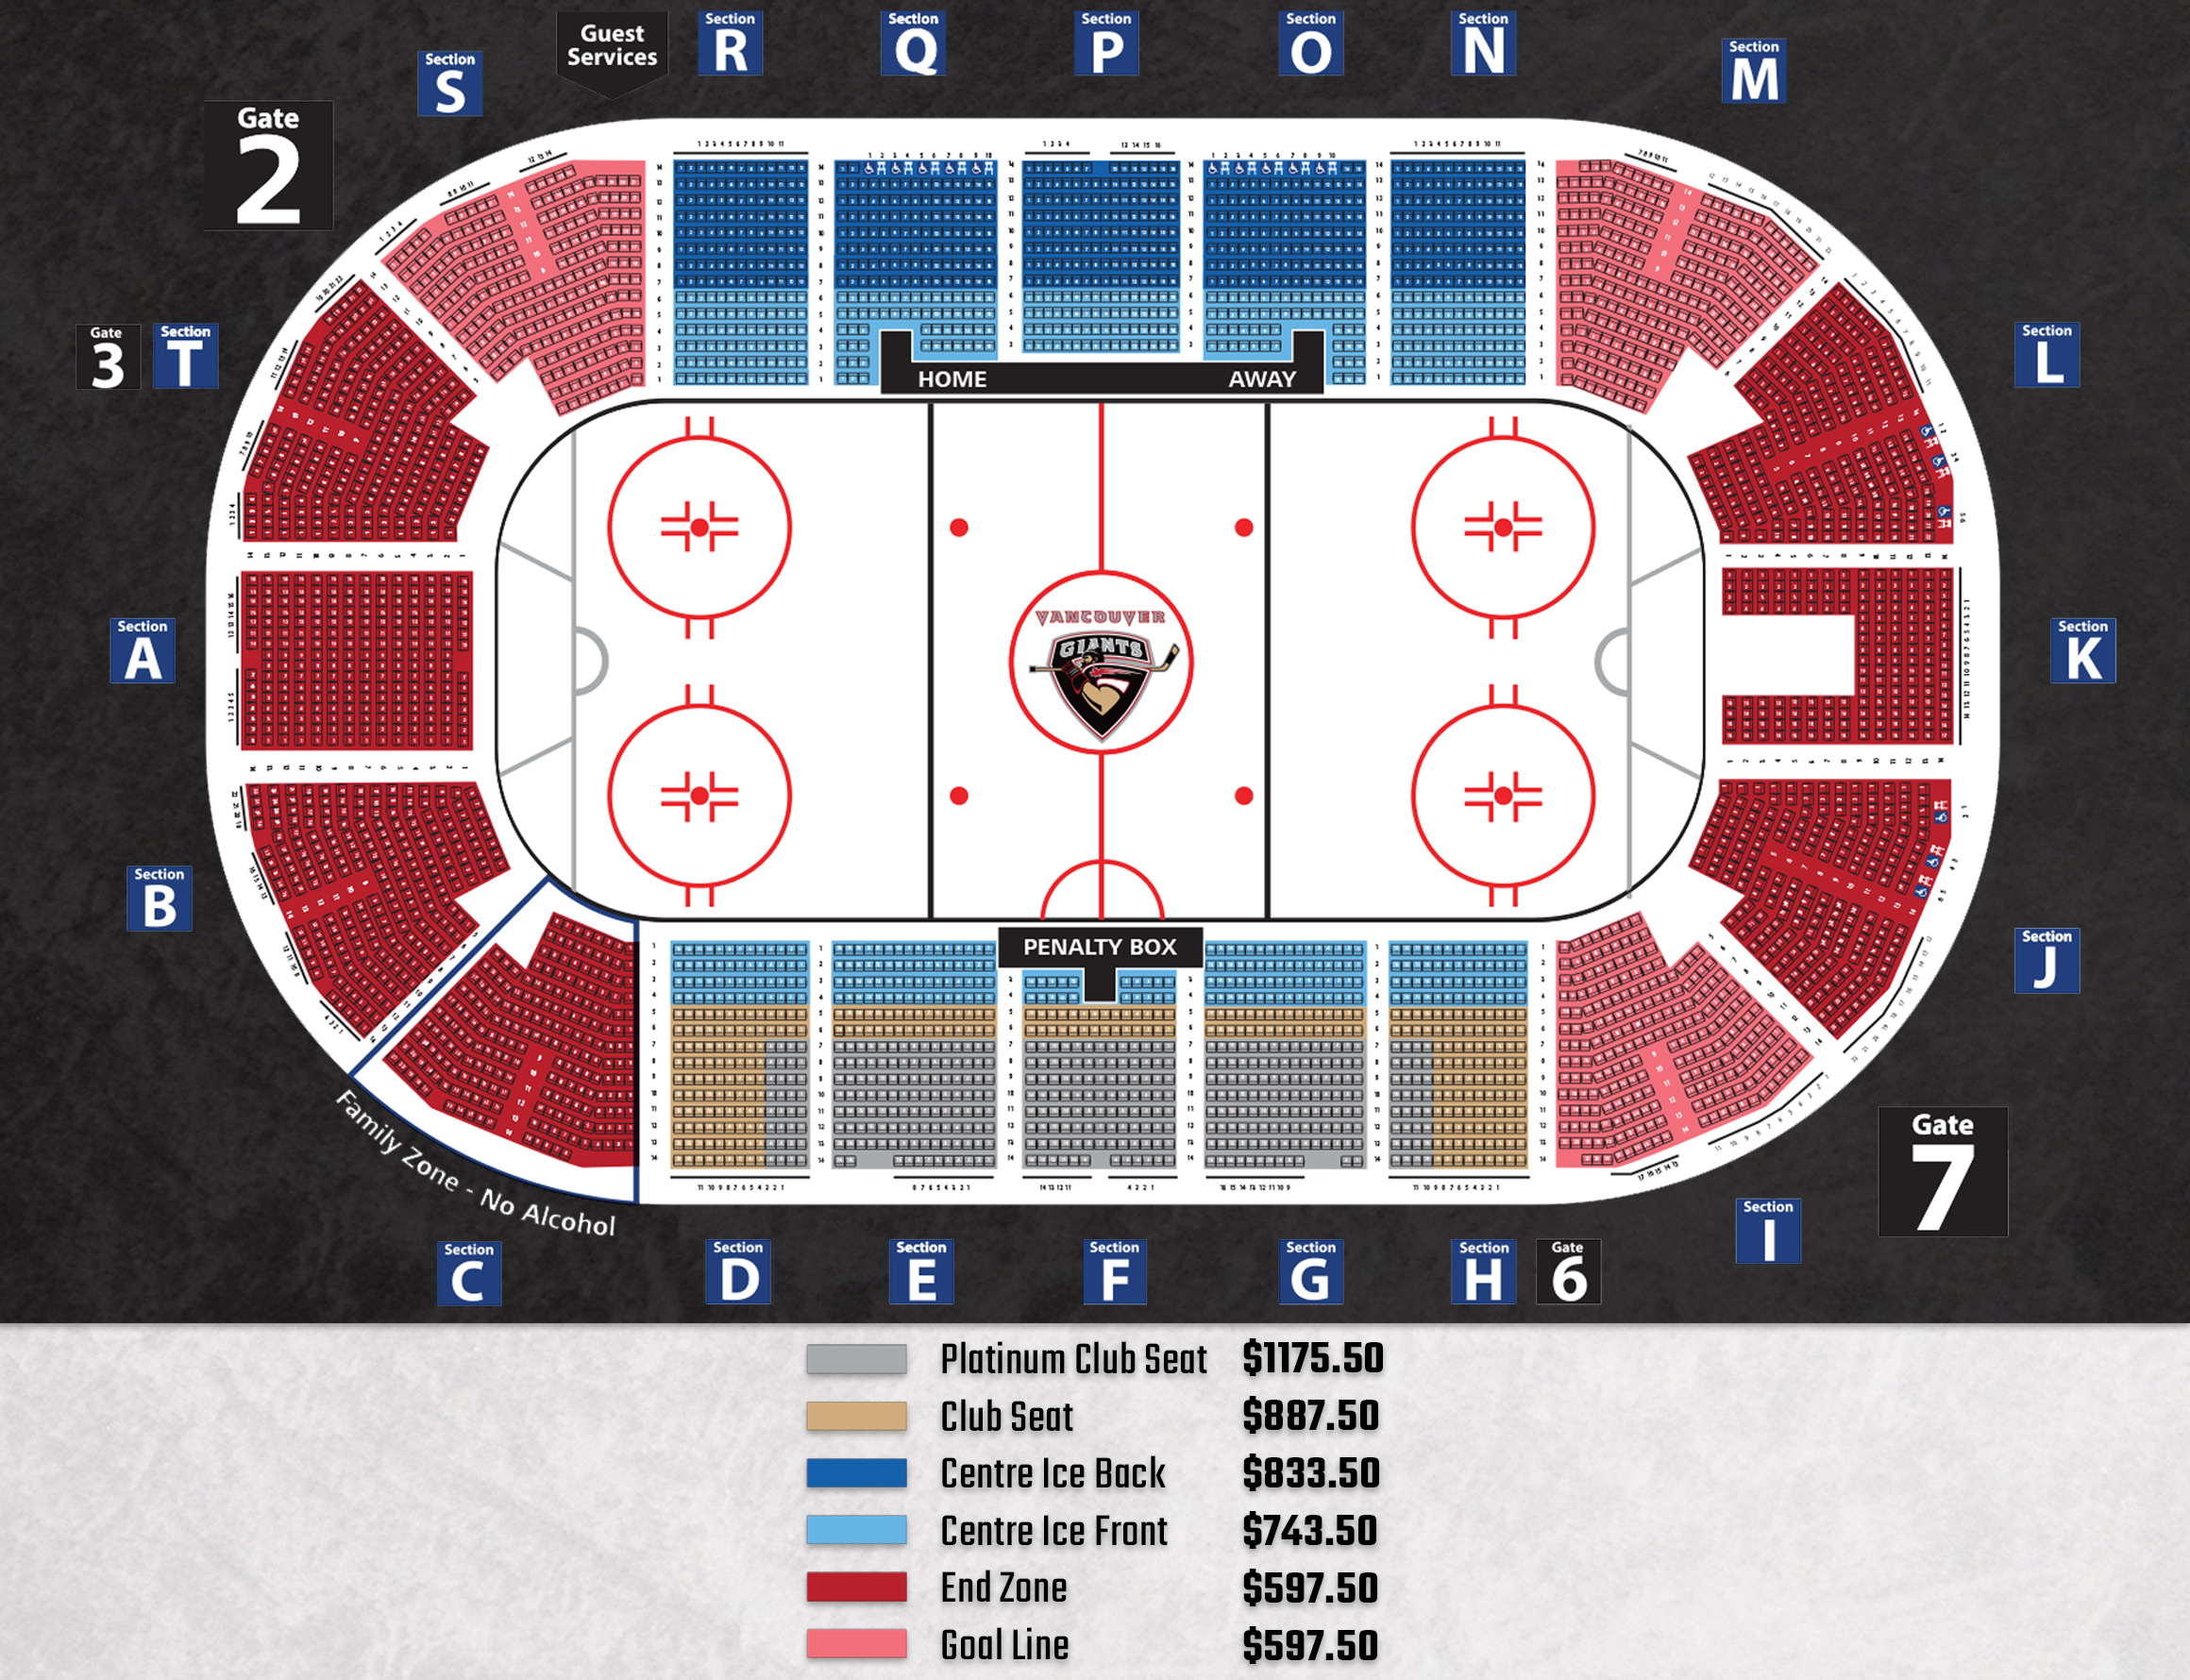 website seat map pricing copy